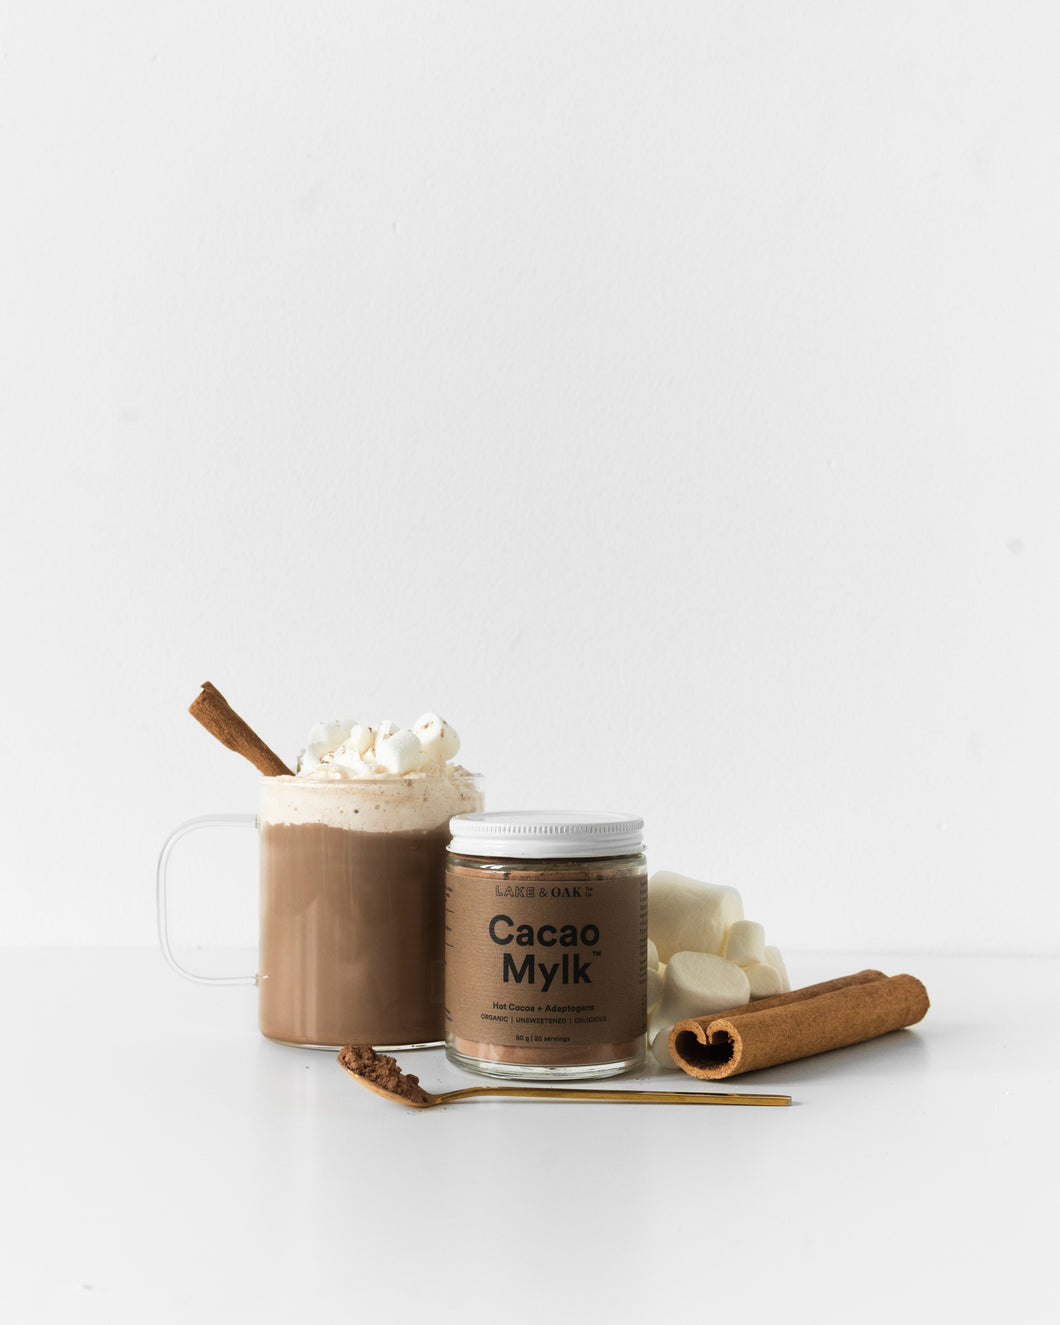 Lake & Oak Tea Co. | Cacao Mylk